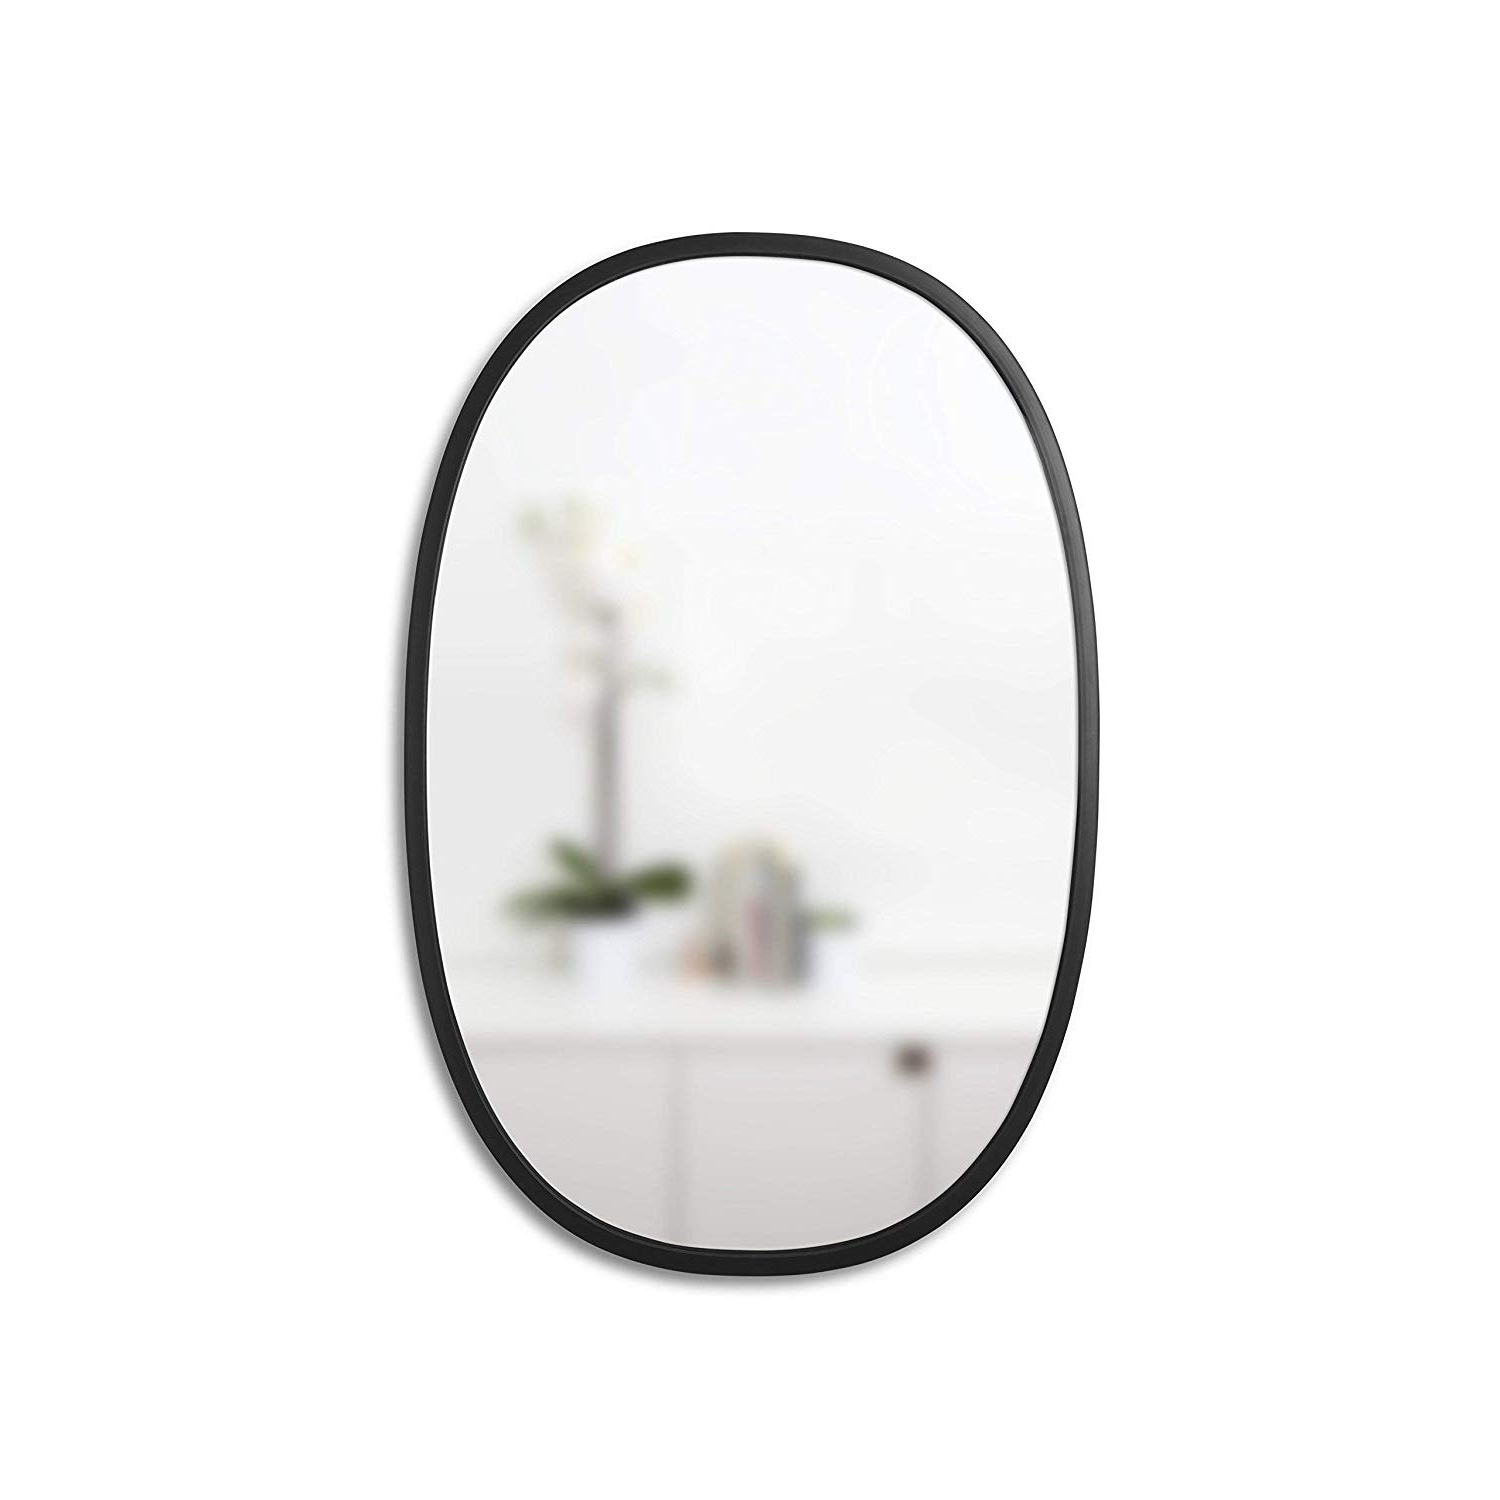 "24 X 36 Wall Mirrors With Current Umbra Hub 24 X 36"" Oval Wall Mirror With Rubber Frame, Modern Room Decor For Entryways, Washrooms, Living Rooms And More, Black (Gallery 14 of 20)"